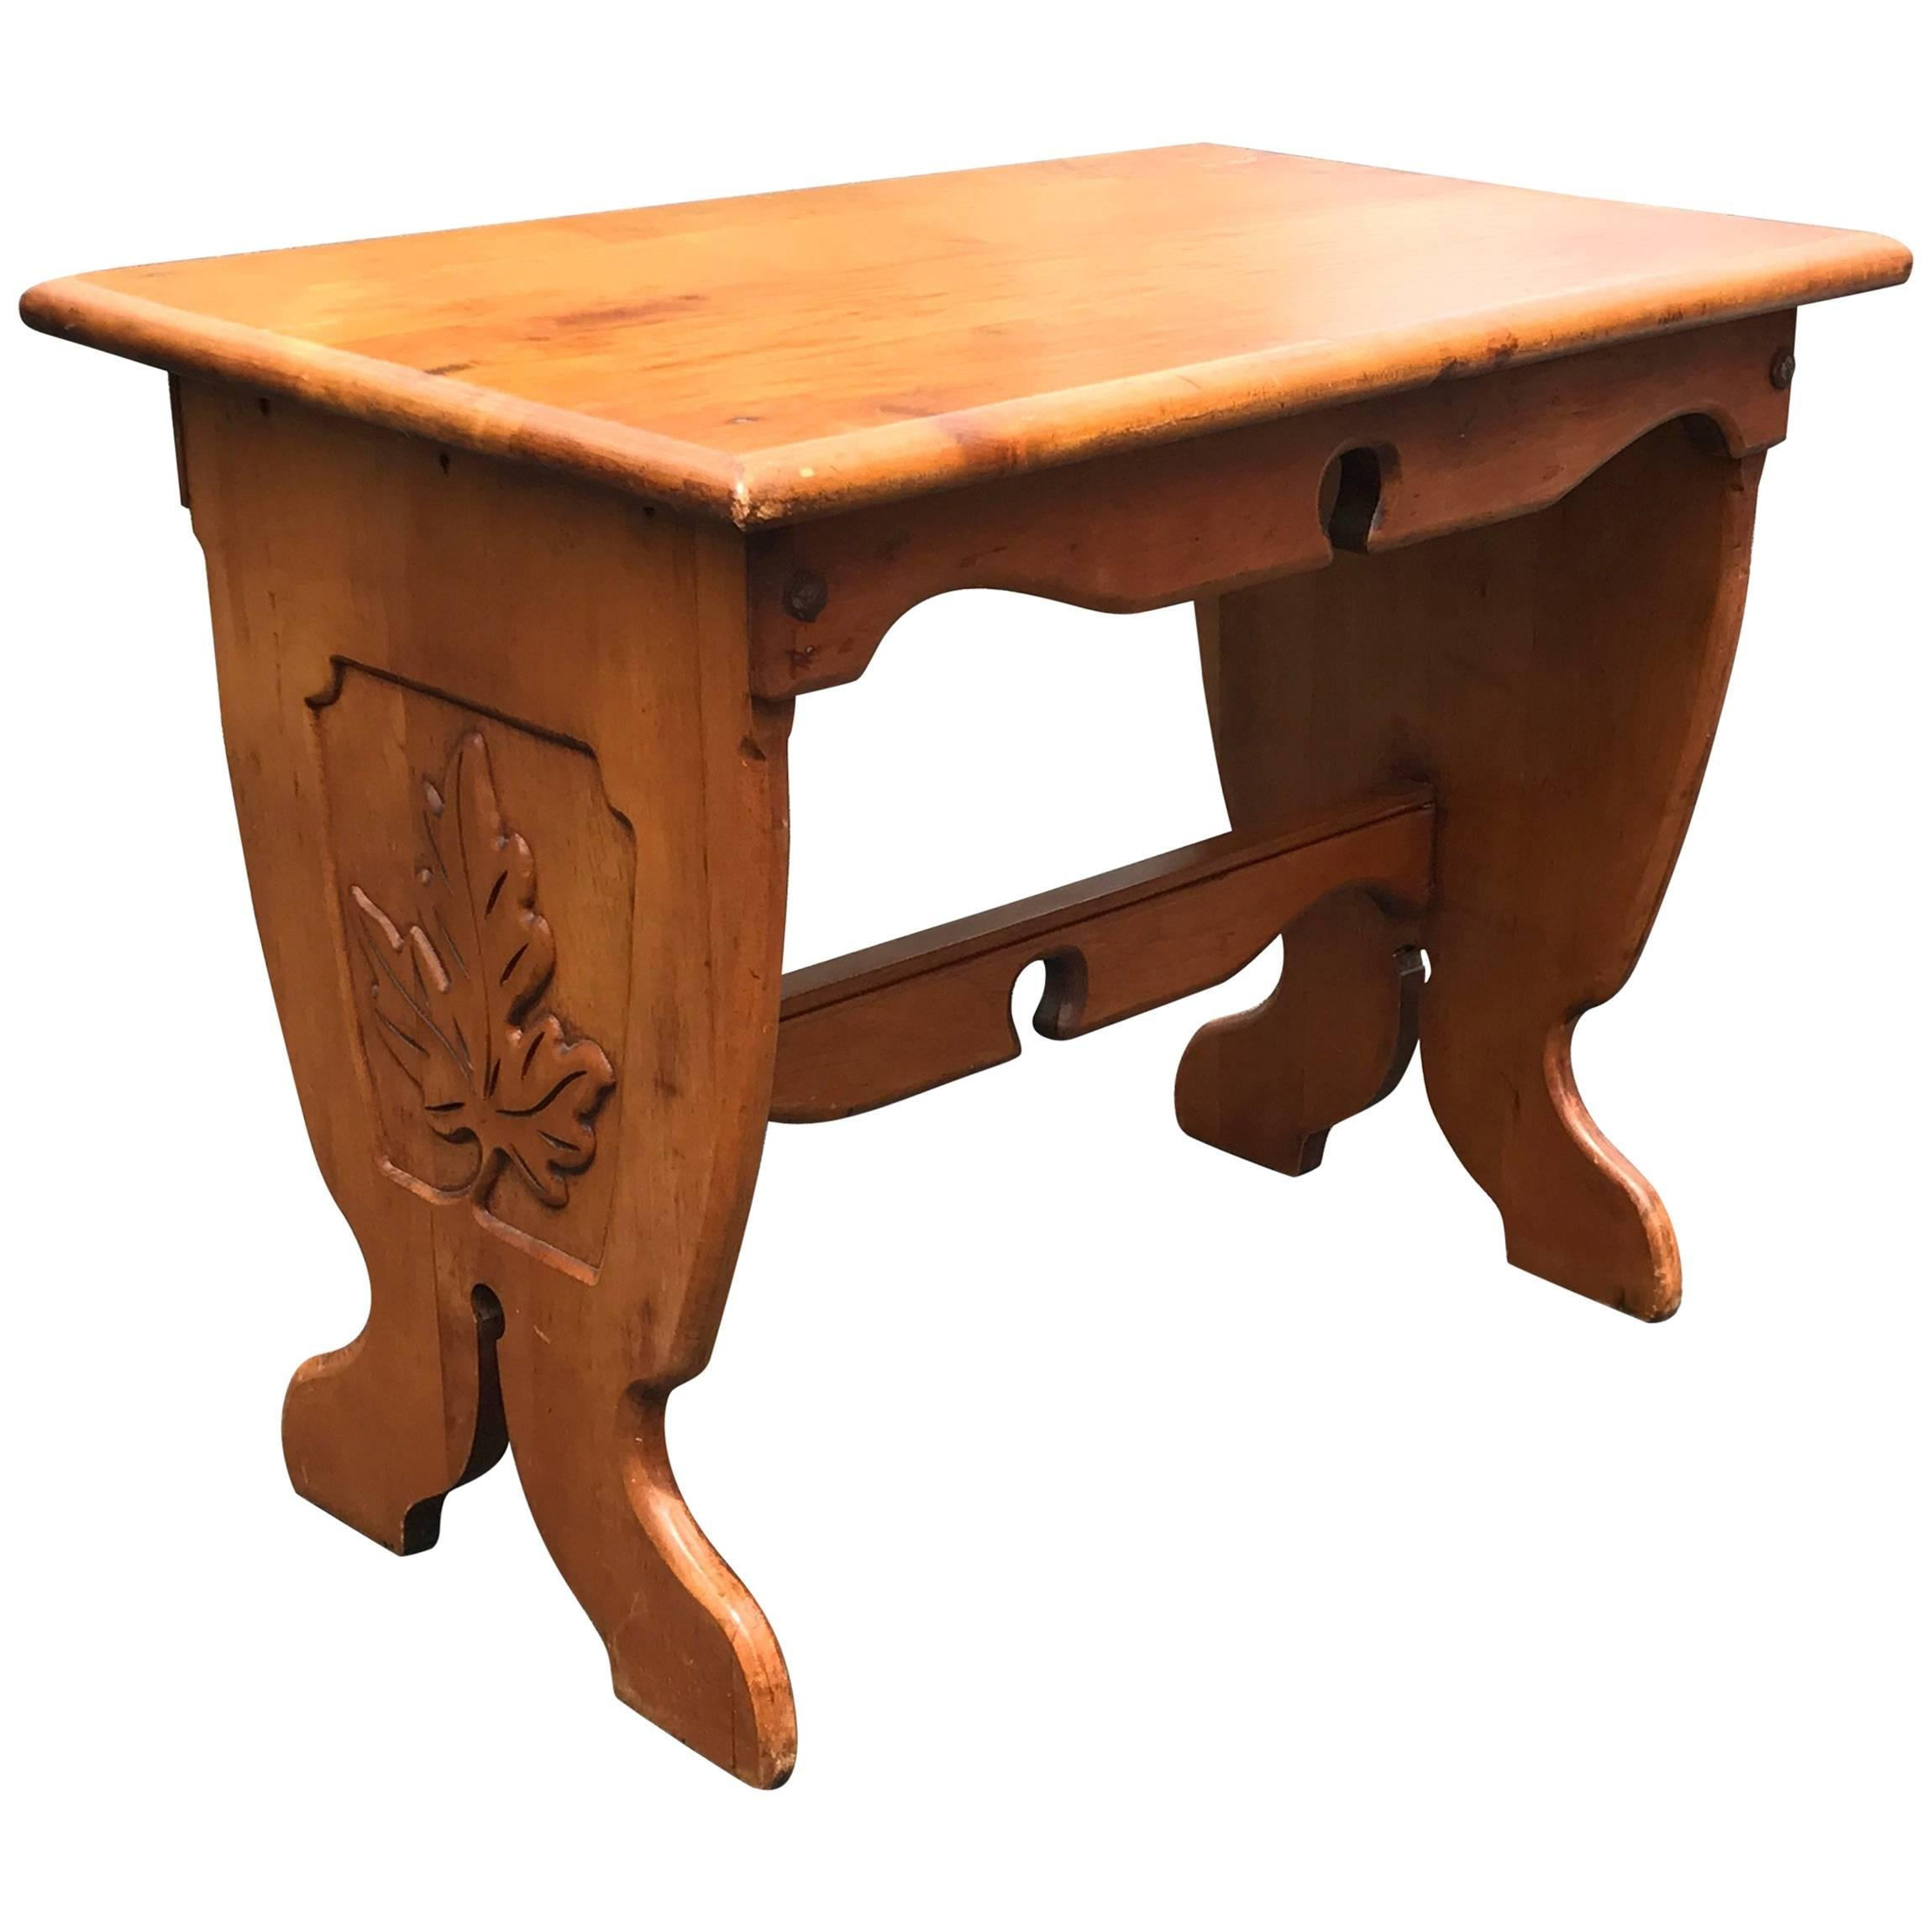 1940s English Oak Side Table with HandCarved Leaf Motif For Sale